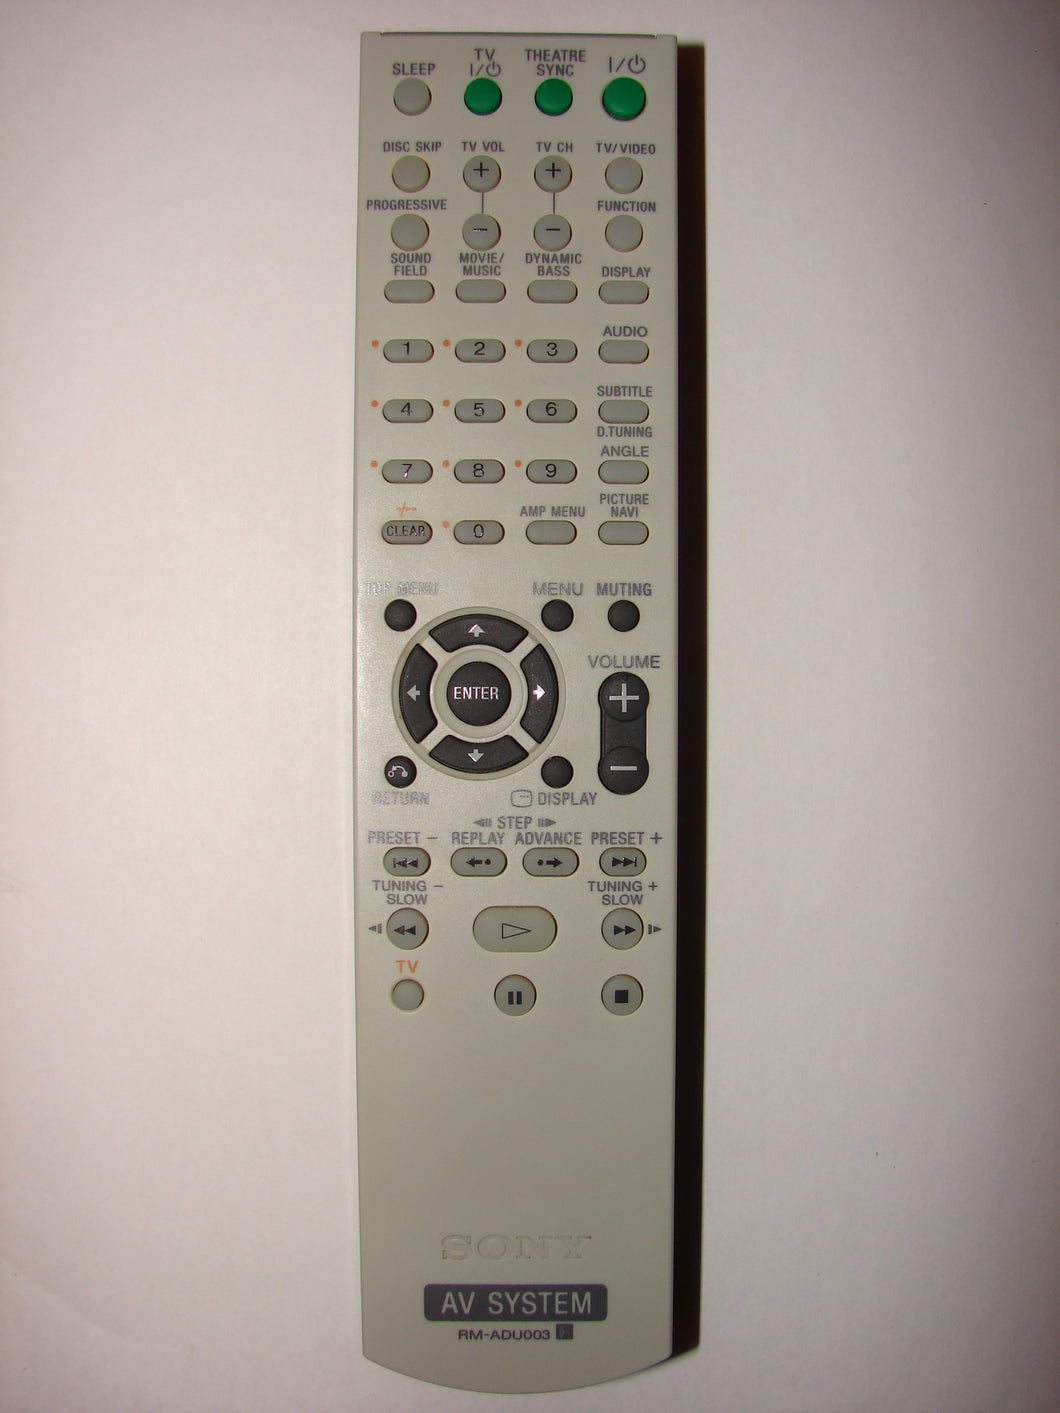 RM-ADU003 Sony Remote Control for AV System front image